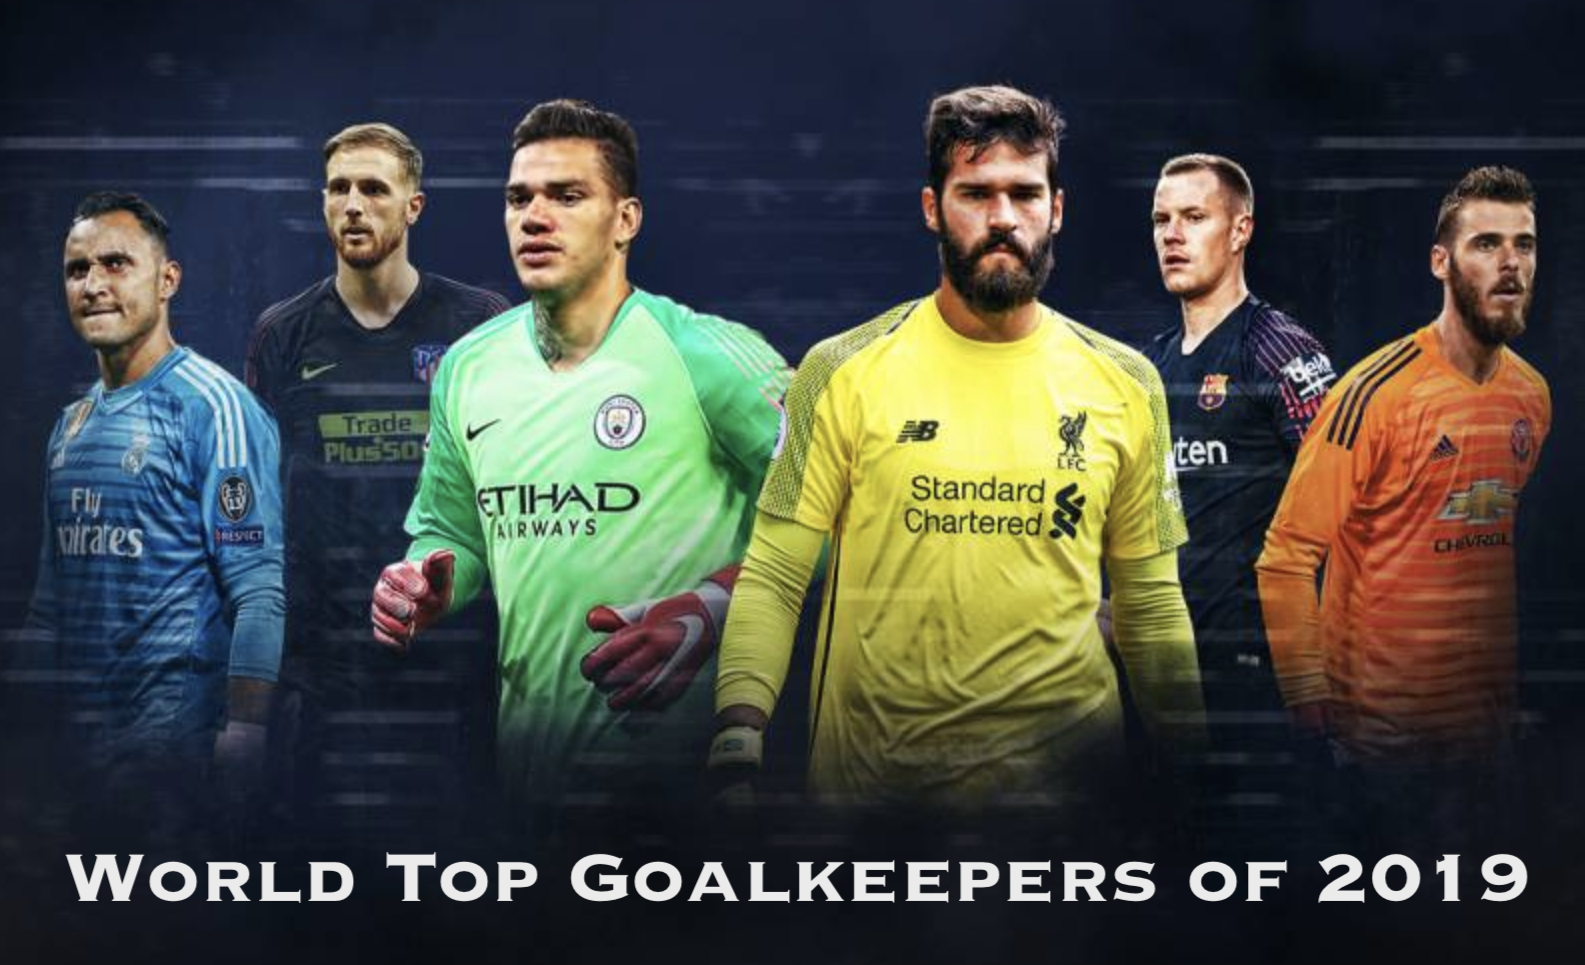 World Top Goalkeepers of 2019